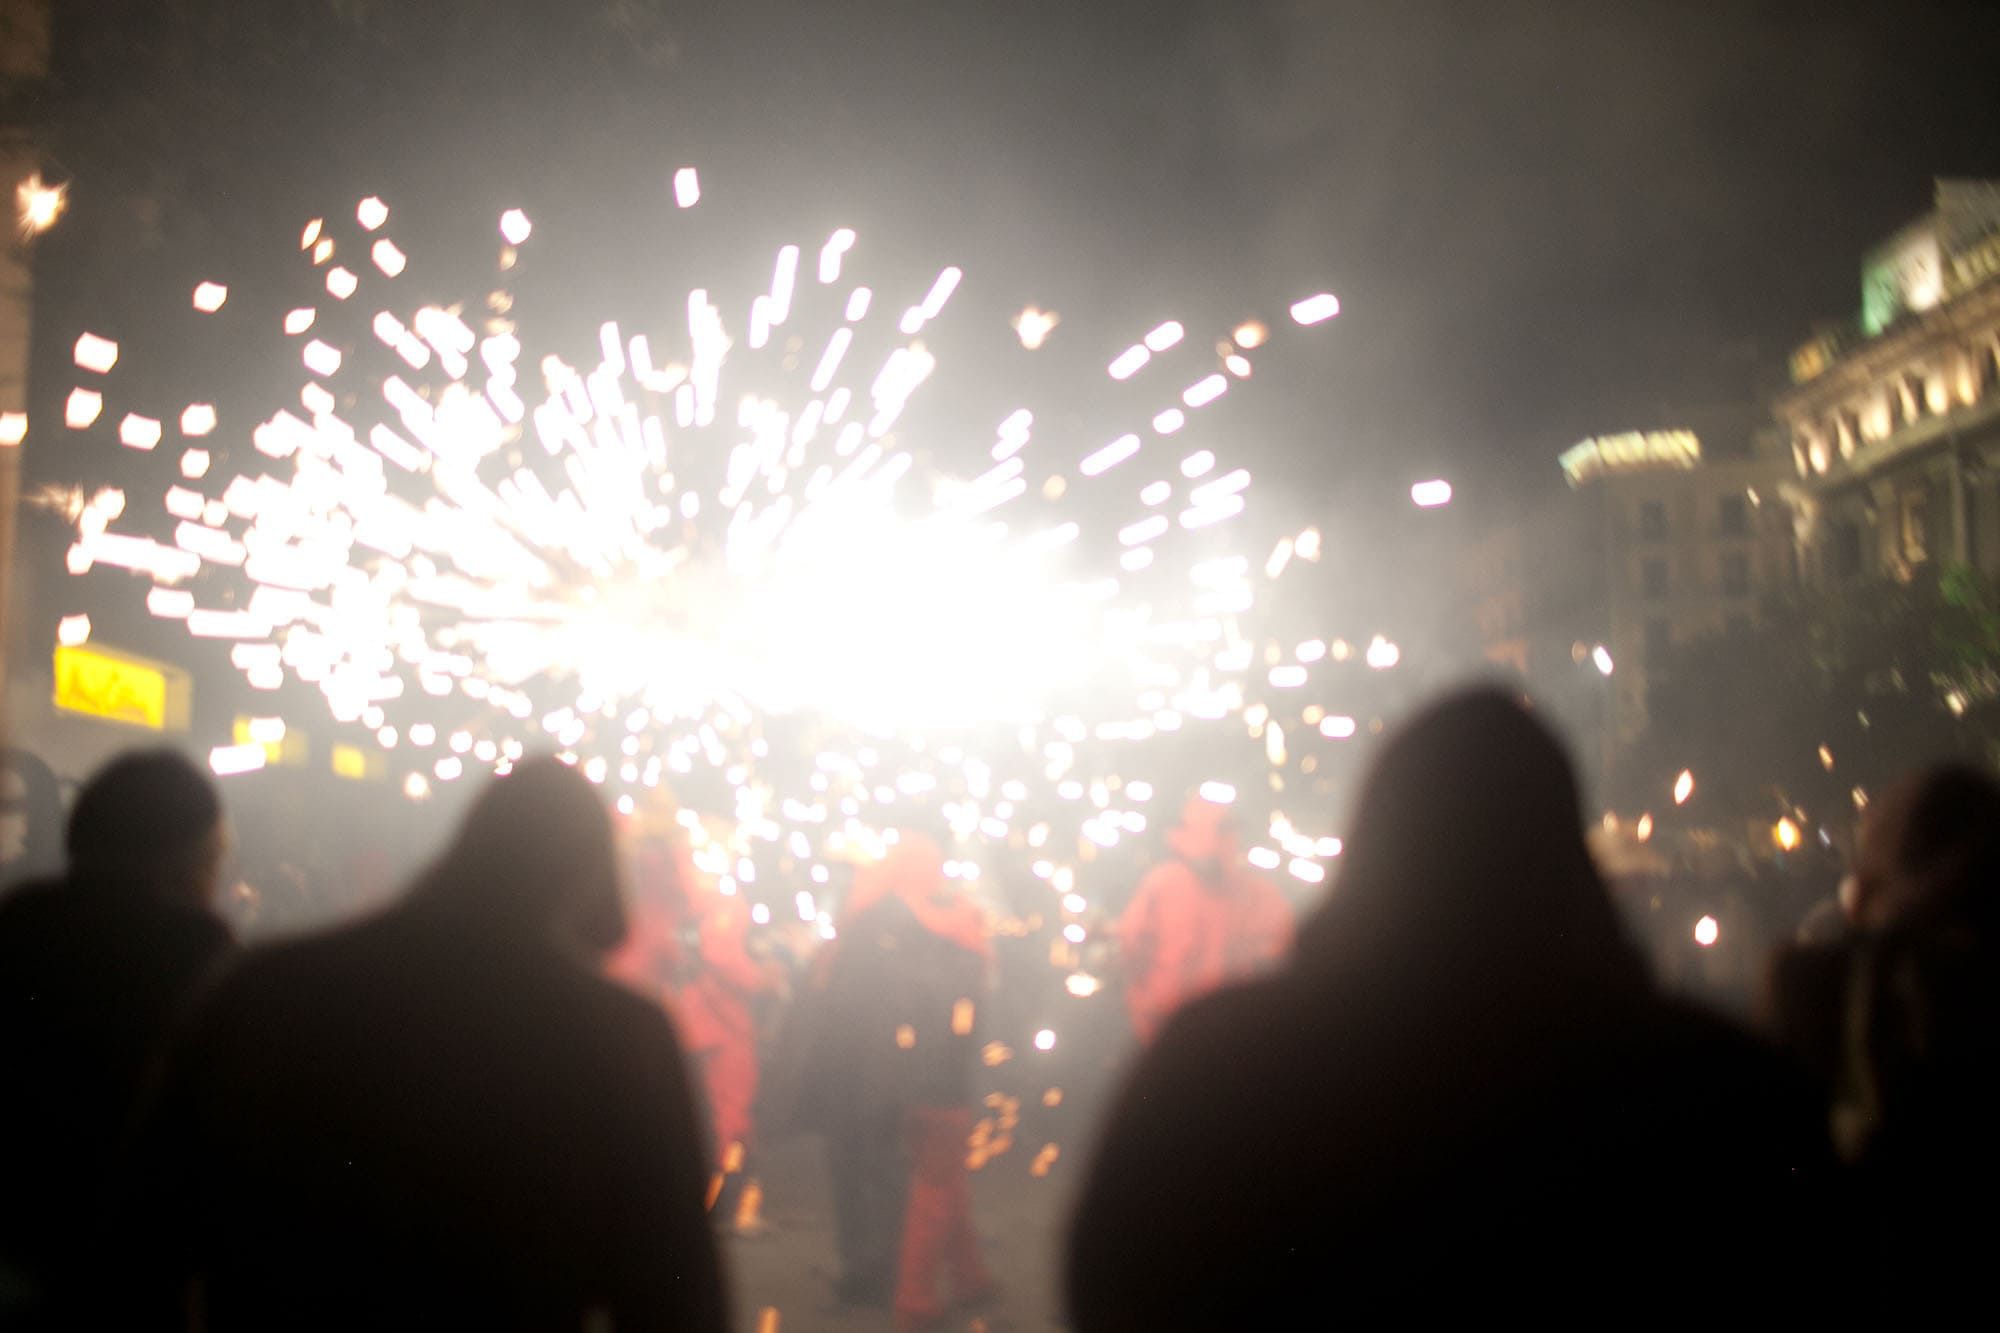 Correfoc: Hell's Gate - a fire parade at La Mercè Festival in Barcelona, Spain